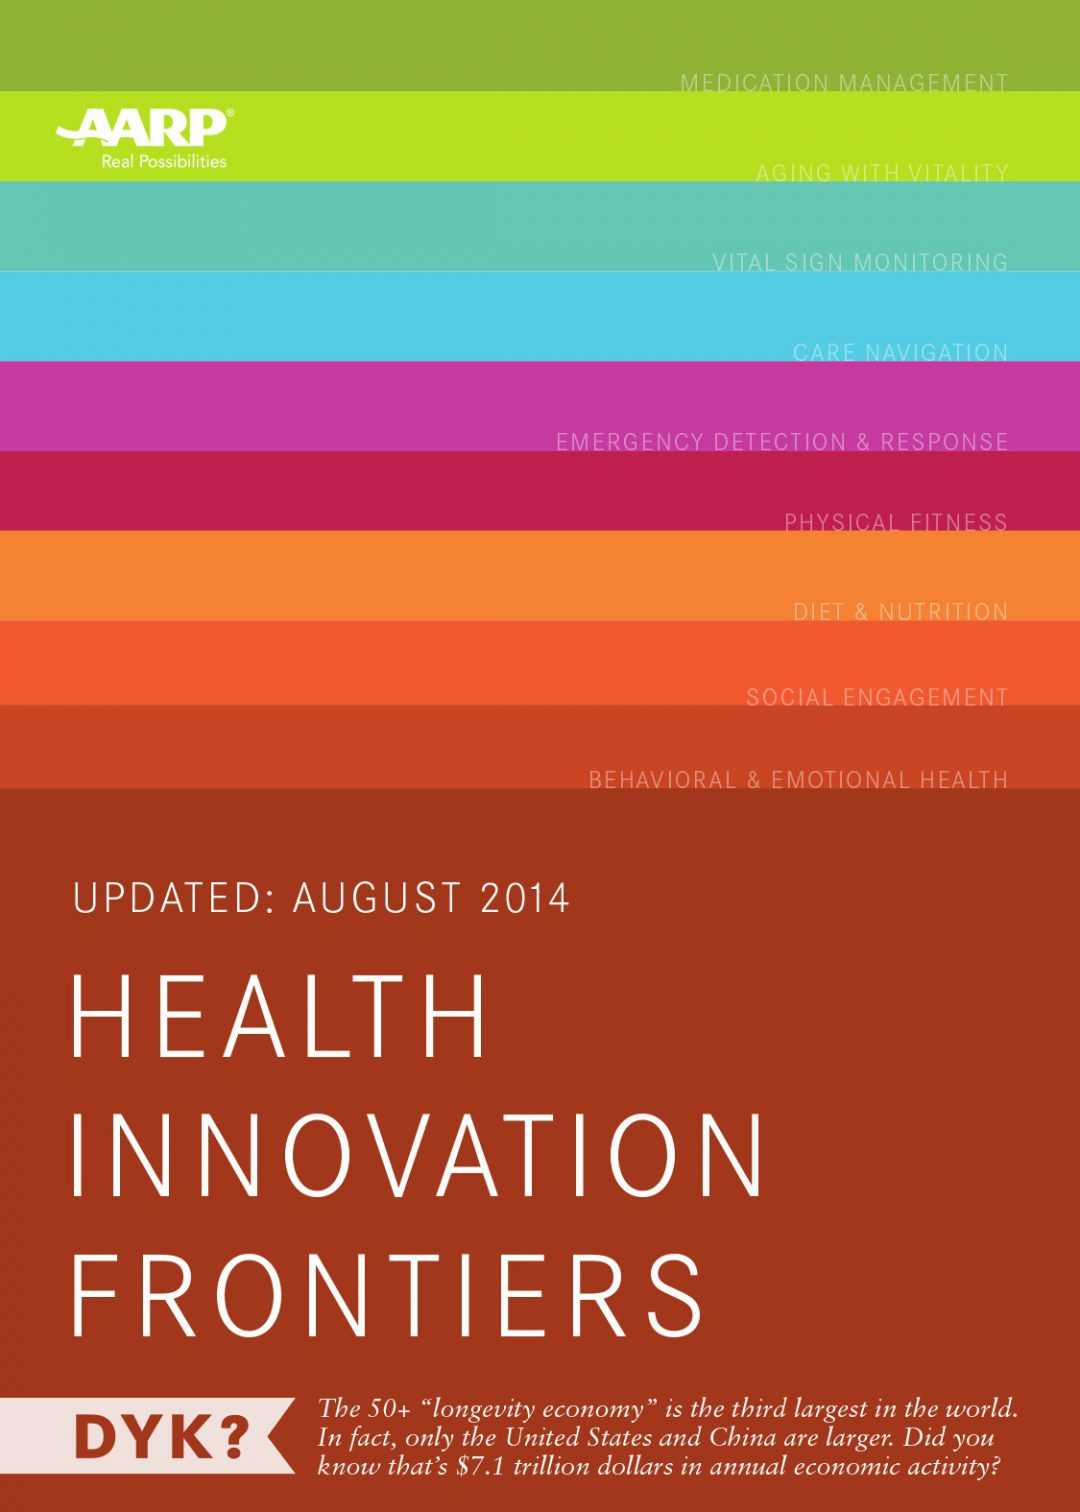 Cover design from the Health Innovation Frontiers report